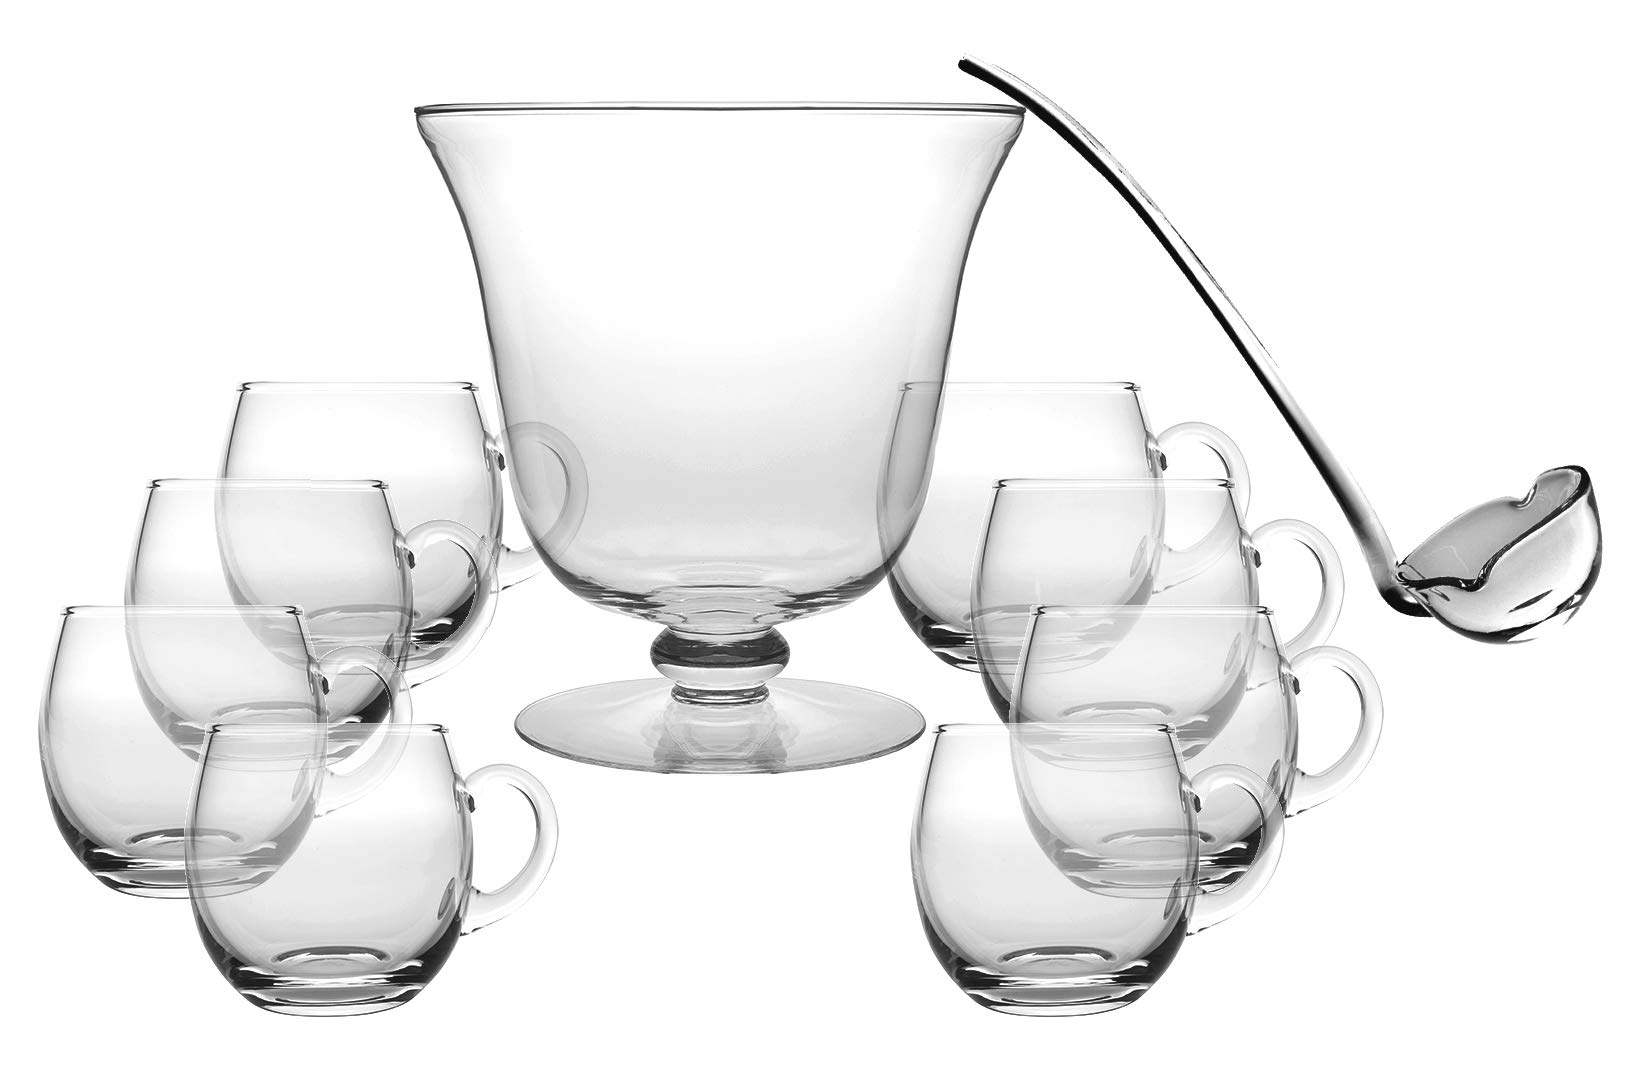 Glass 10 Piece Punch Bowl Set - Includes - 1 Punch Bowl - 1 Ladle - 8 Punch Cups - By Barski - Punch Bowl is 10.25'' D - 210 oz - Ladle is 14'' L - Punch Cup is 12 oz. - Made in Europe